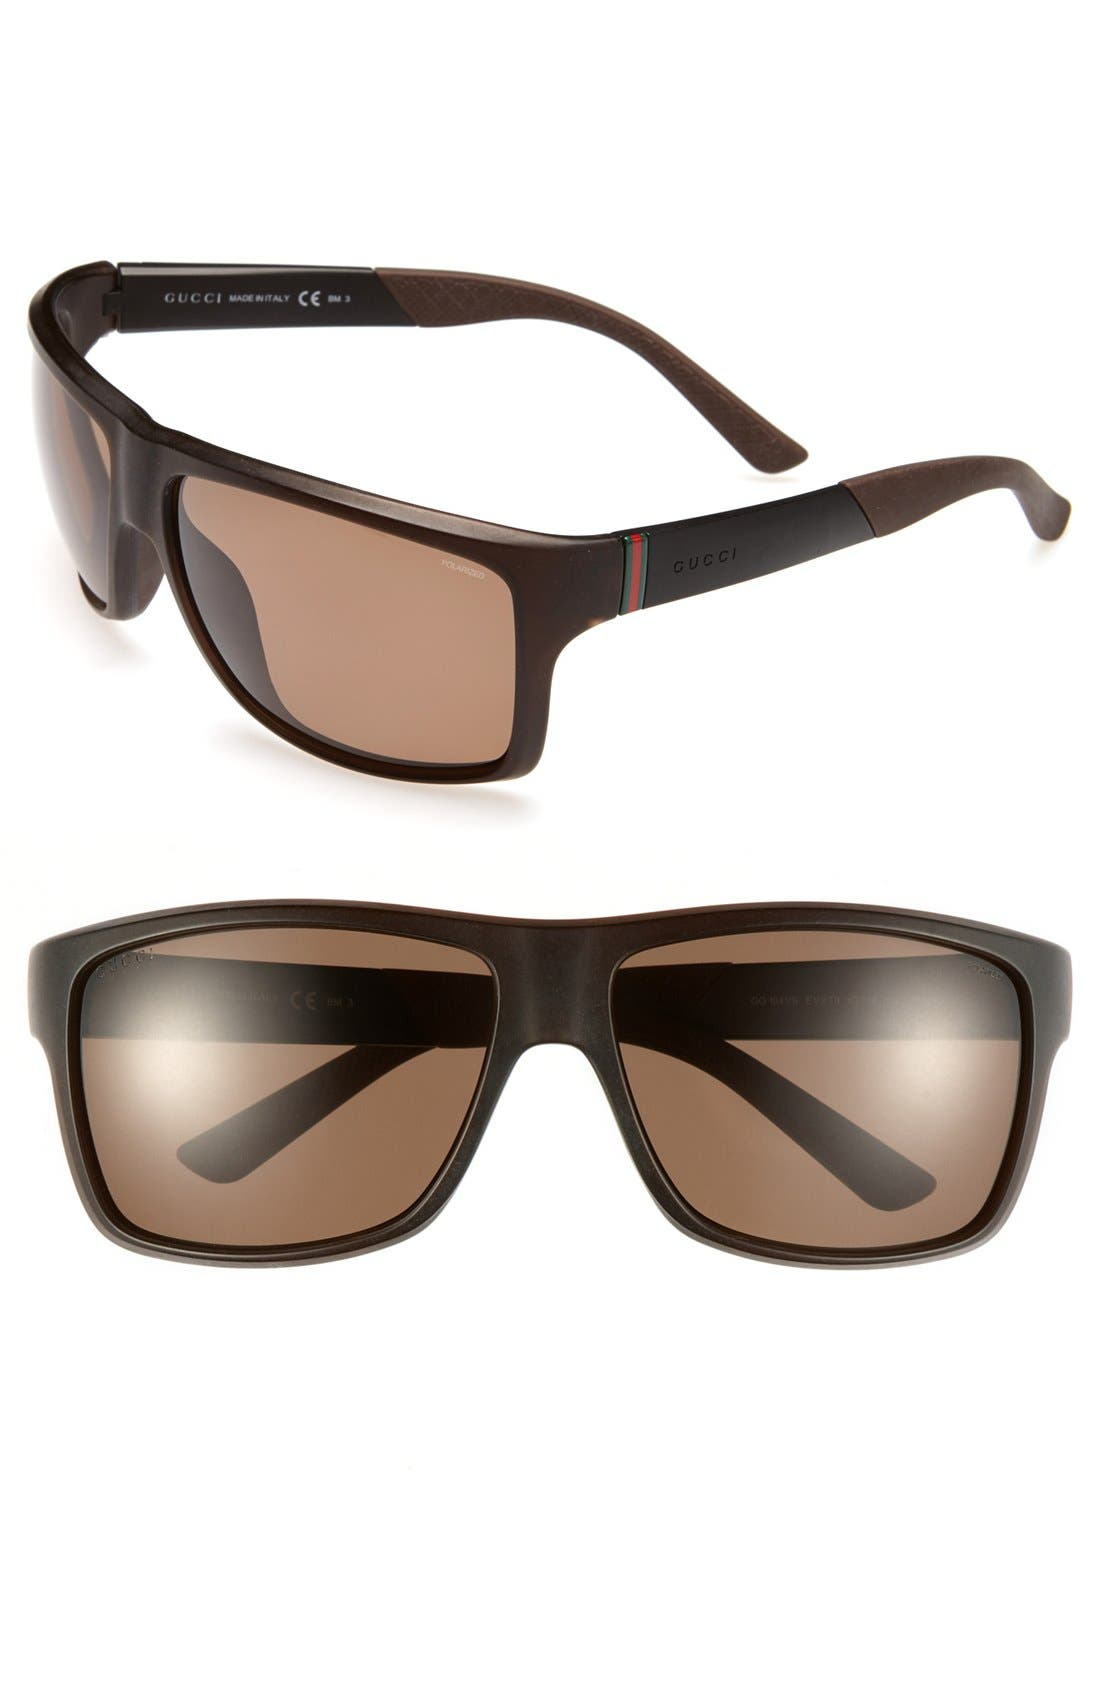 Alternate Image 1 Selected - Gucci 62mm Polarized Sunglasses